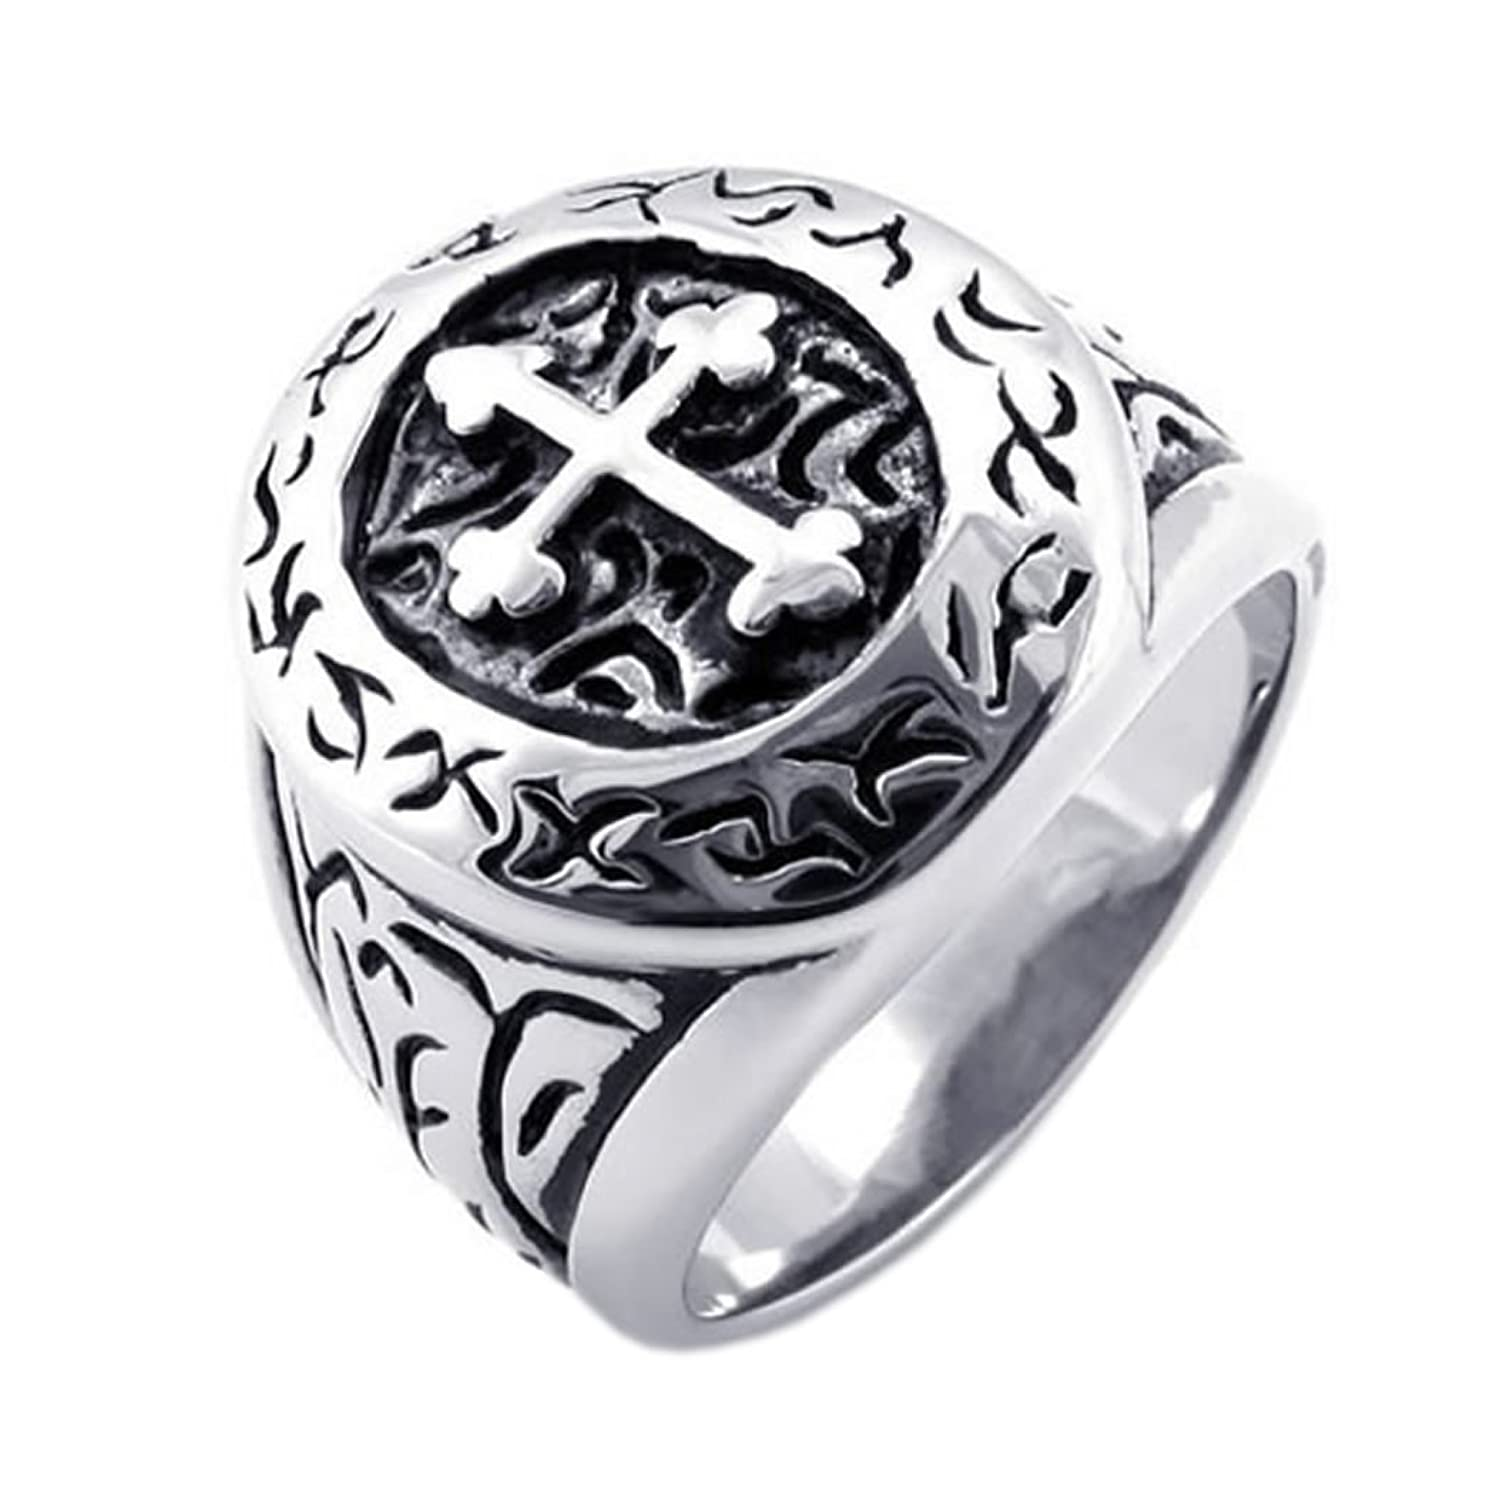 mzcb c men elisa surrounded rings ilana religious ring s